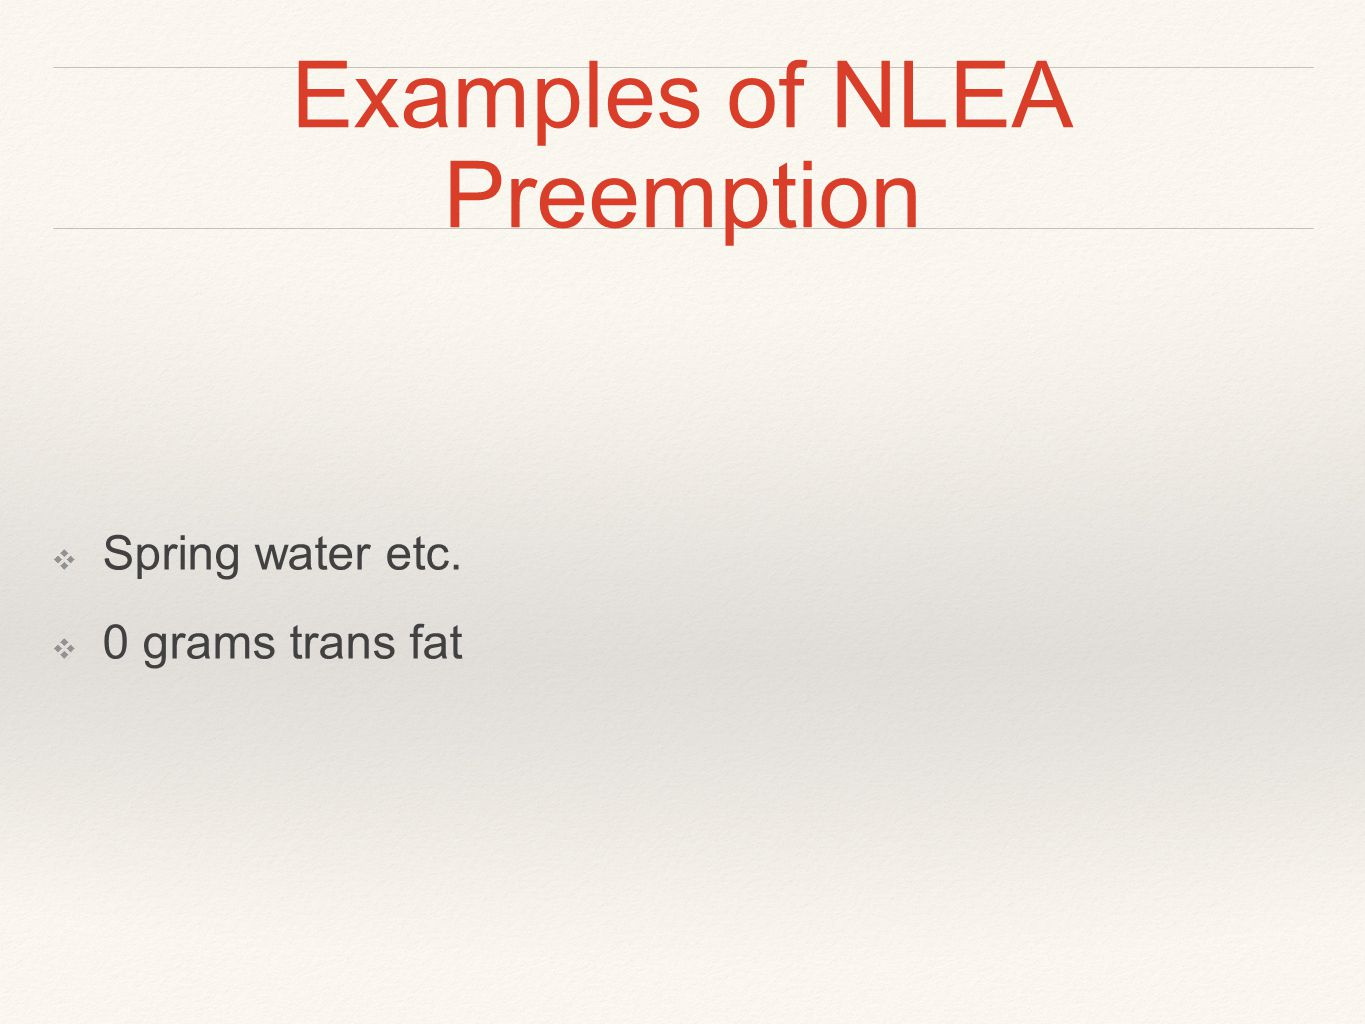 Examples of NLEA Preemption